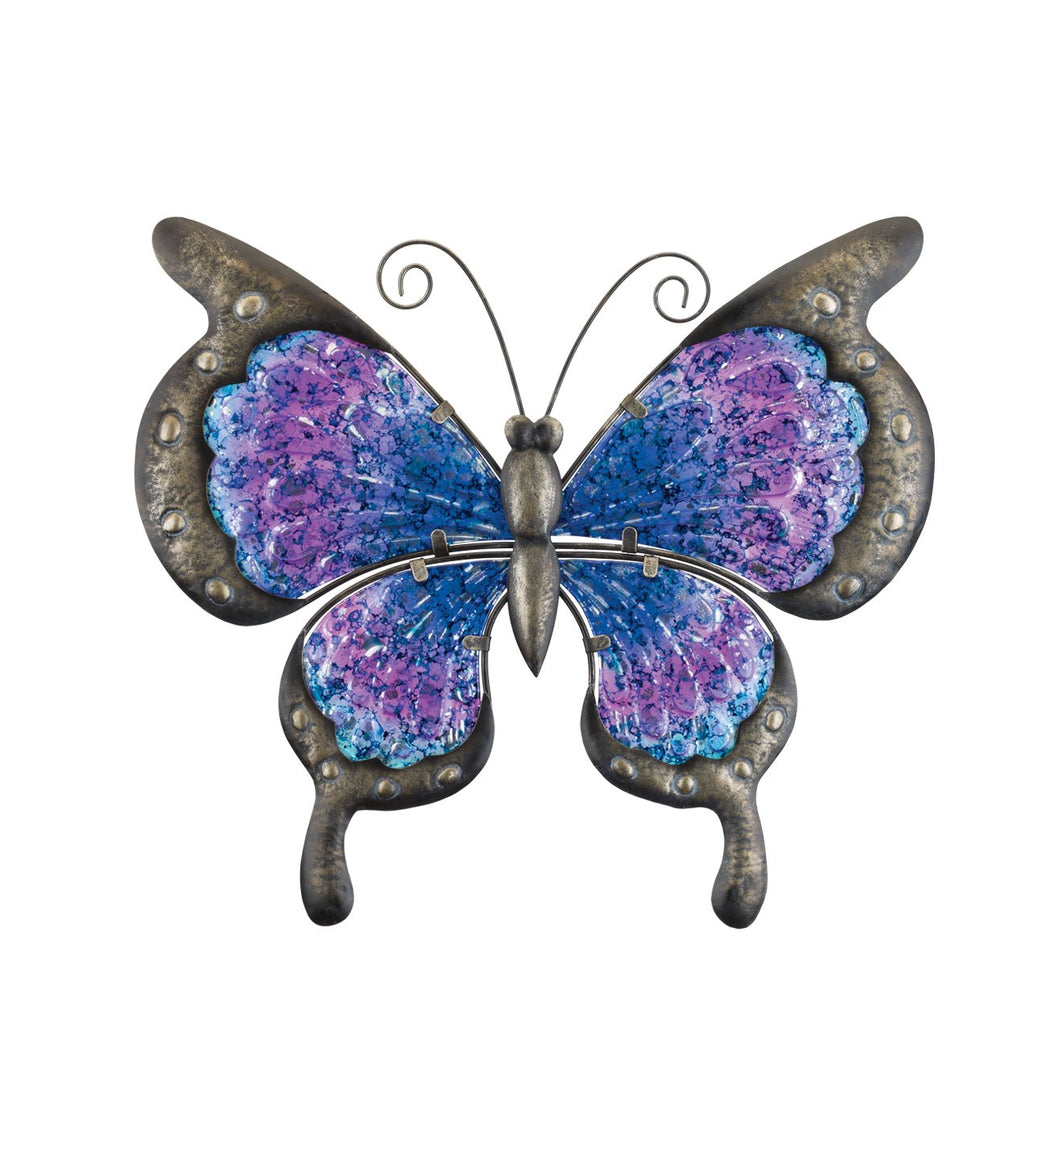 Regal Art & Gift Vintage Butterfly Wall Decor 13